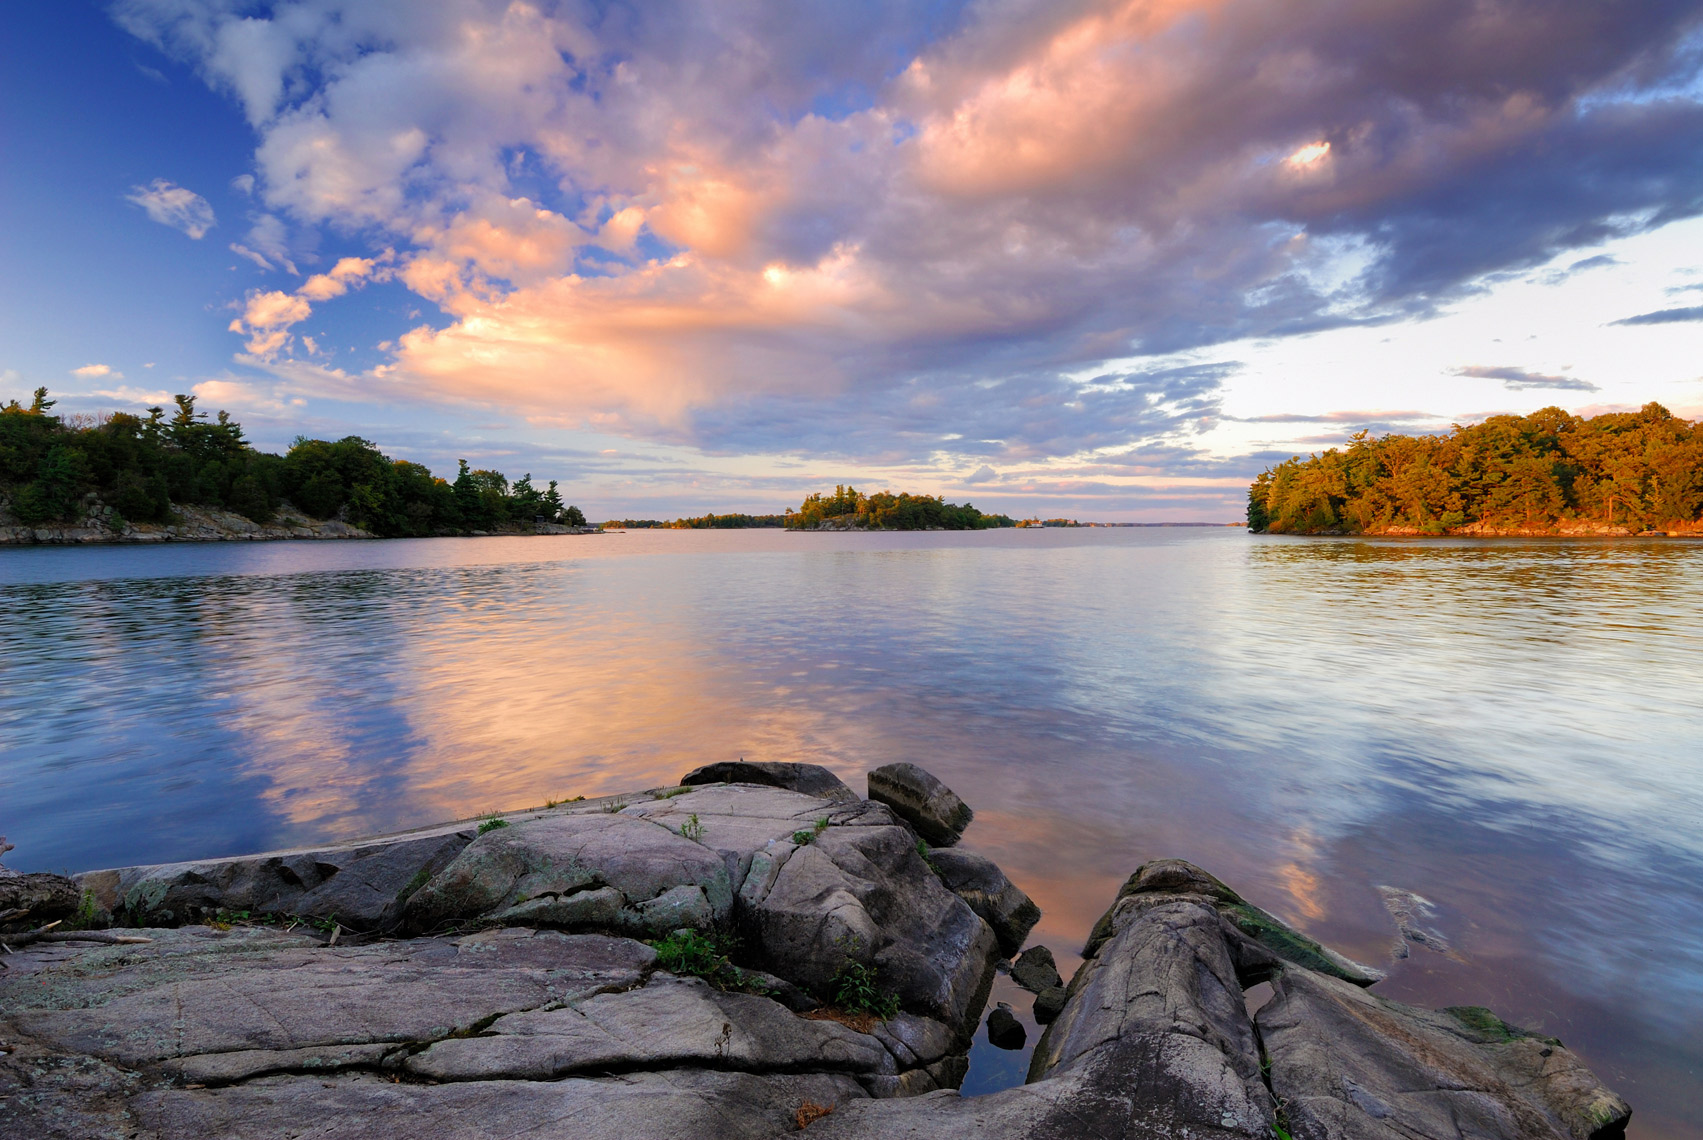 Evening Light from Camelot island, Thousand Islands National Park, Ontario, Canada